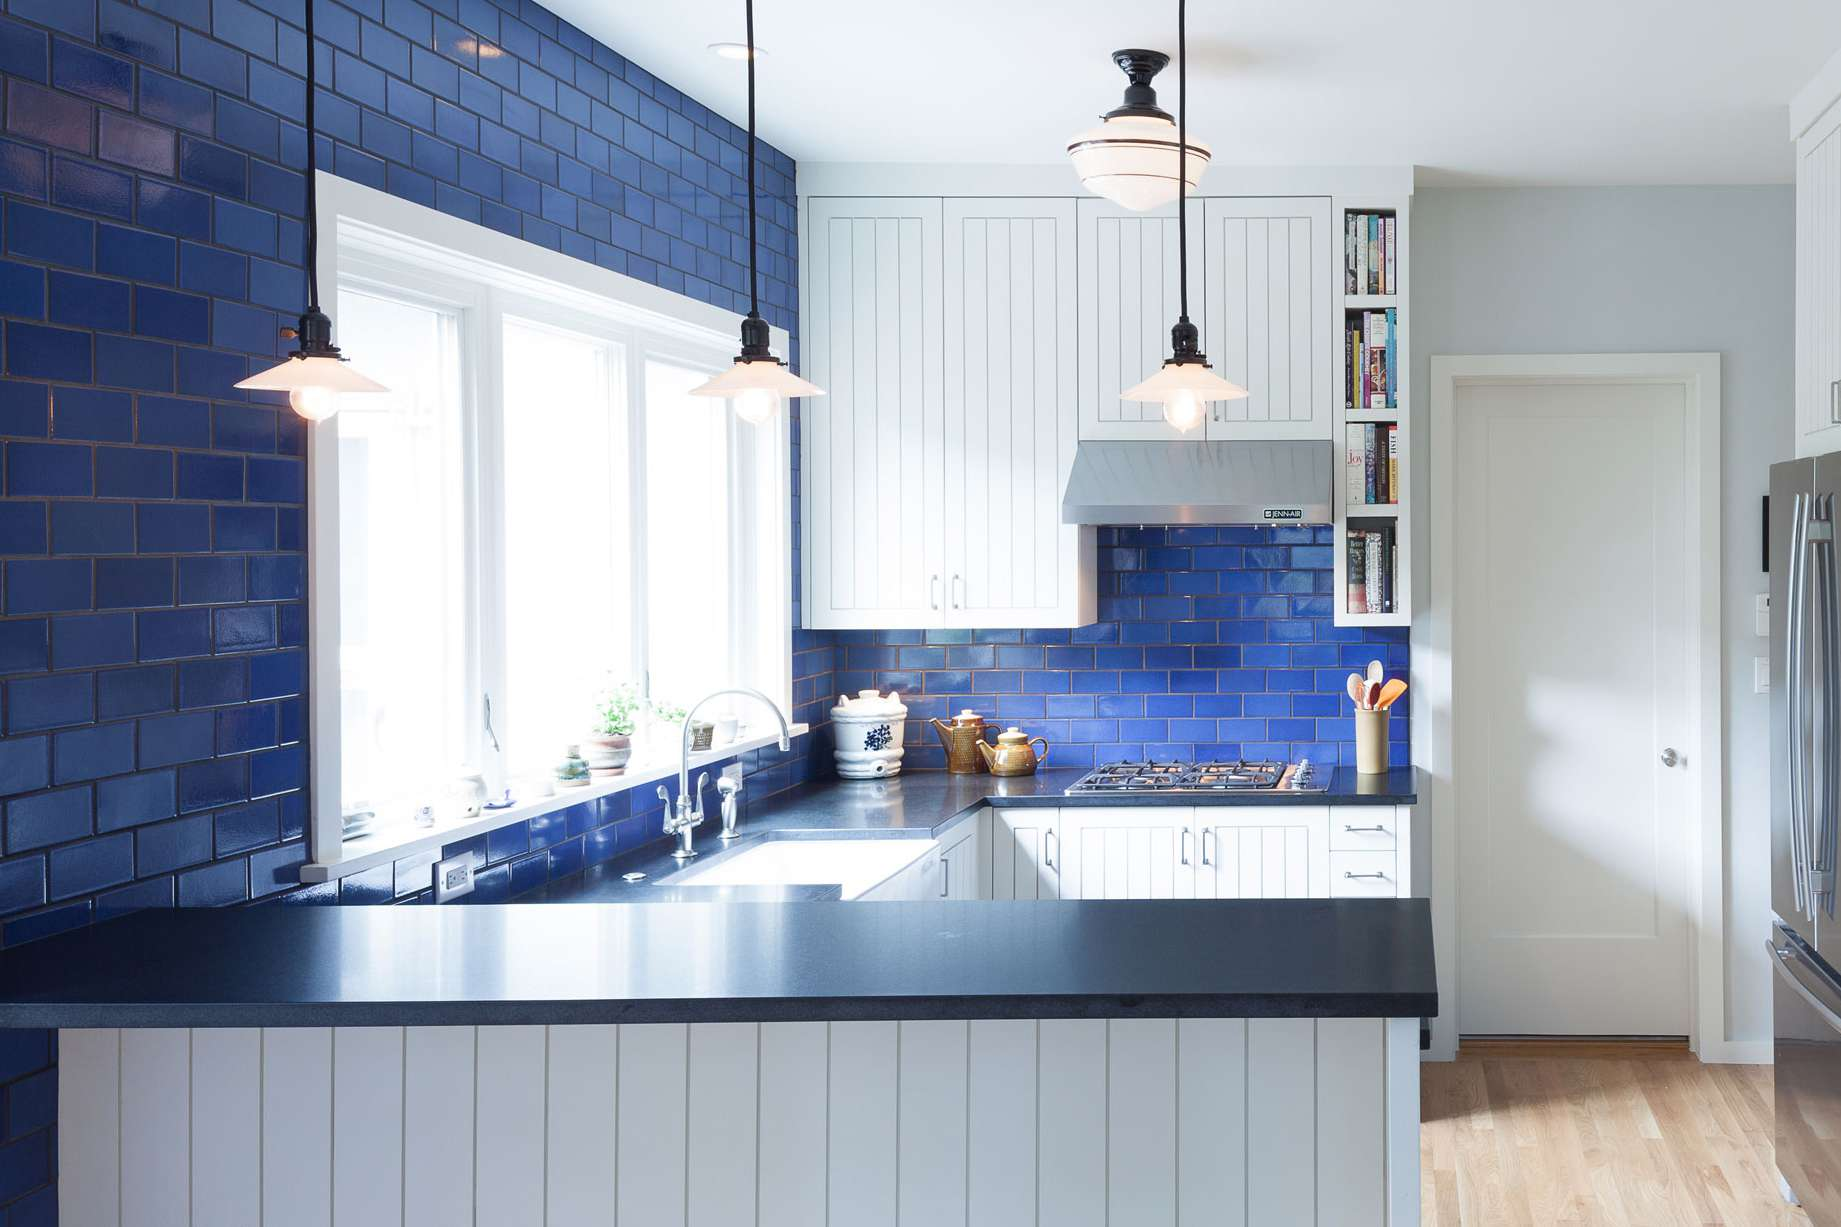 Kitchen with blue subway tiles